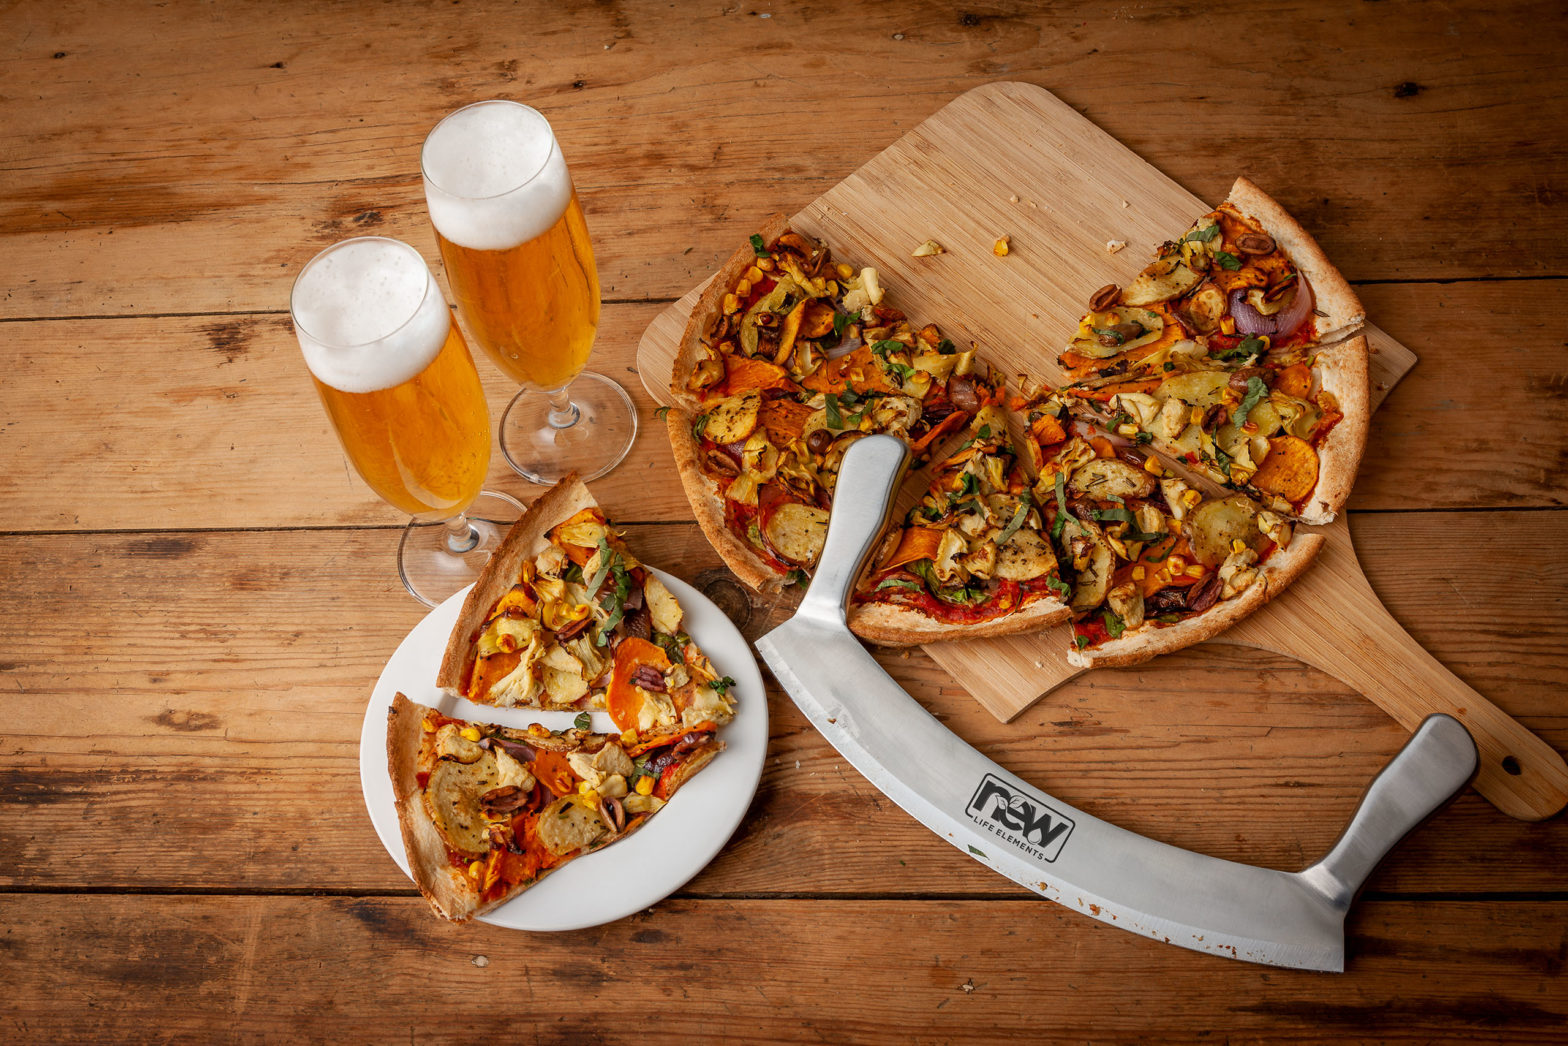 pizza and beer,ebay australia,stainless steel pizza cutter,best pizza cutter in Australia,mezzaluna pizza cutter australia